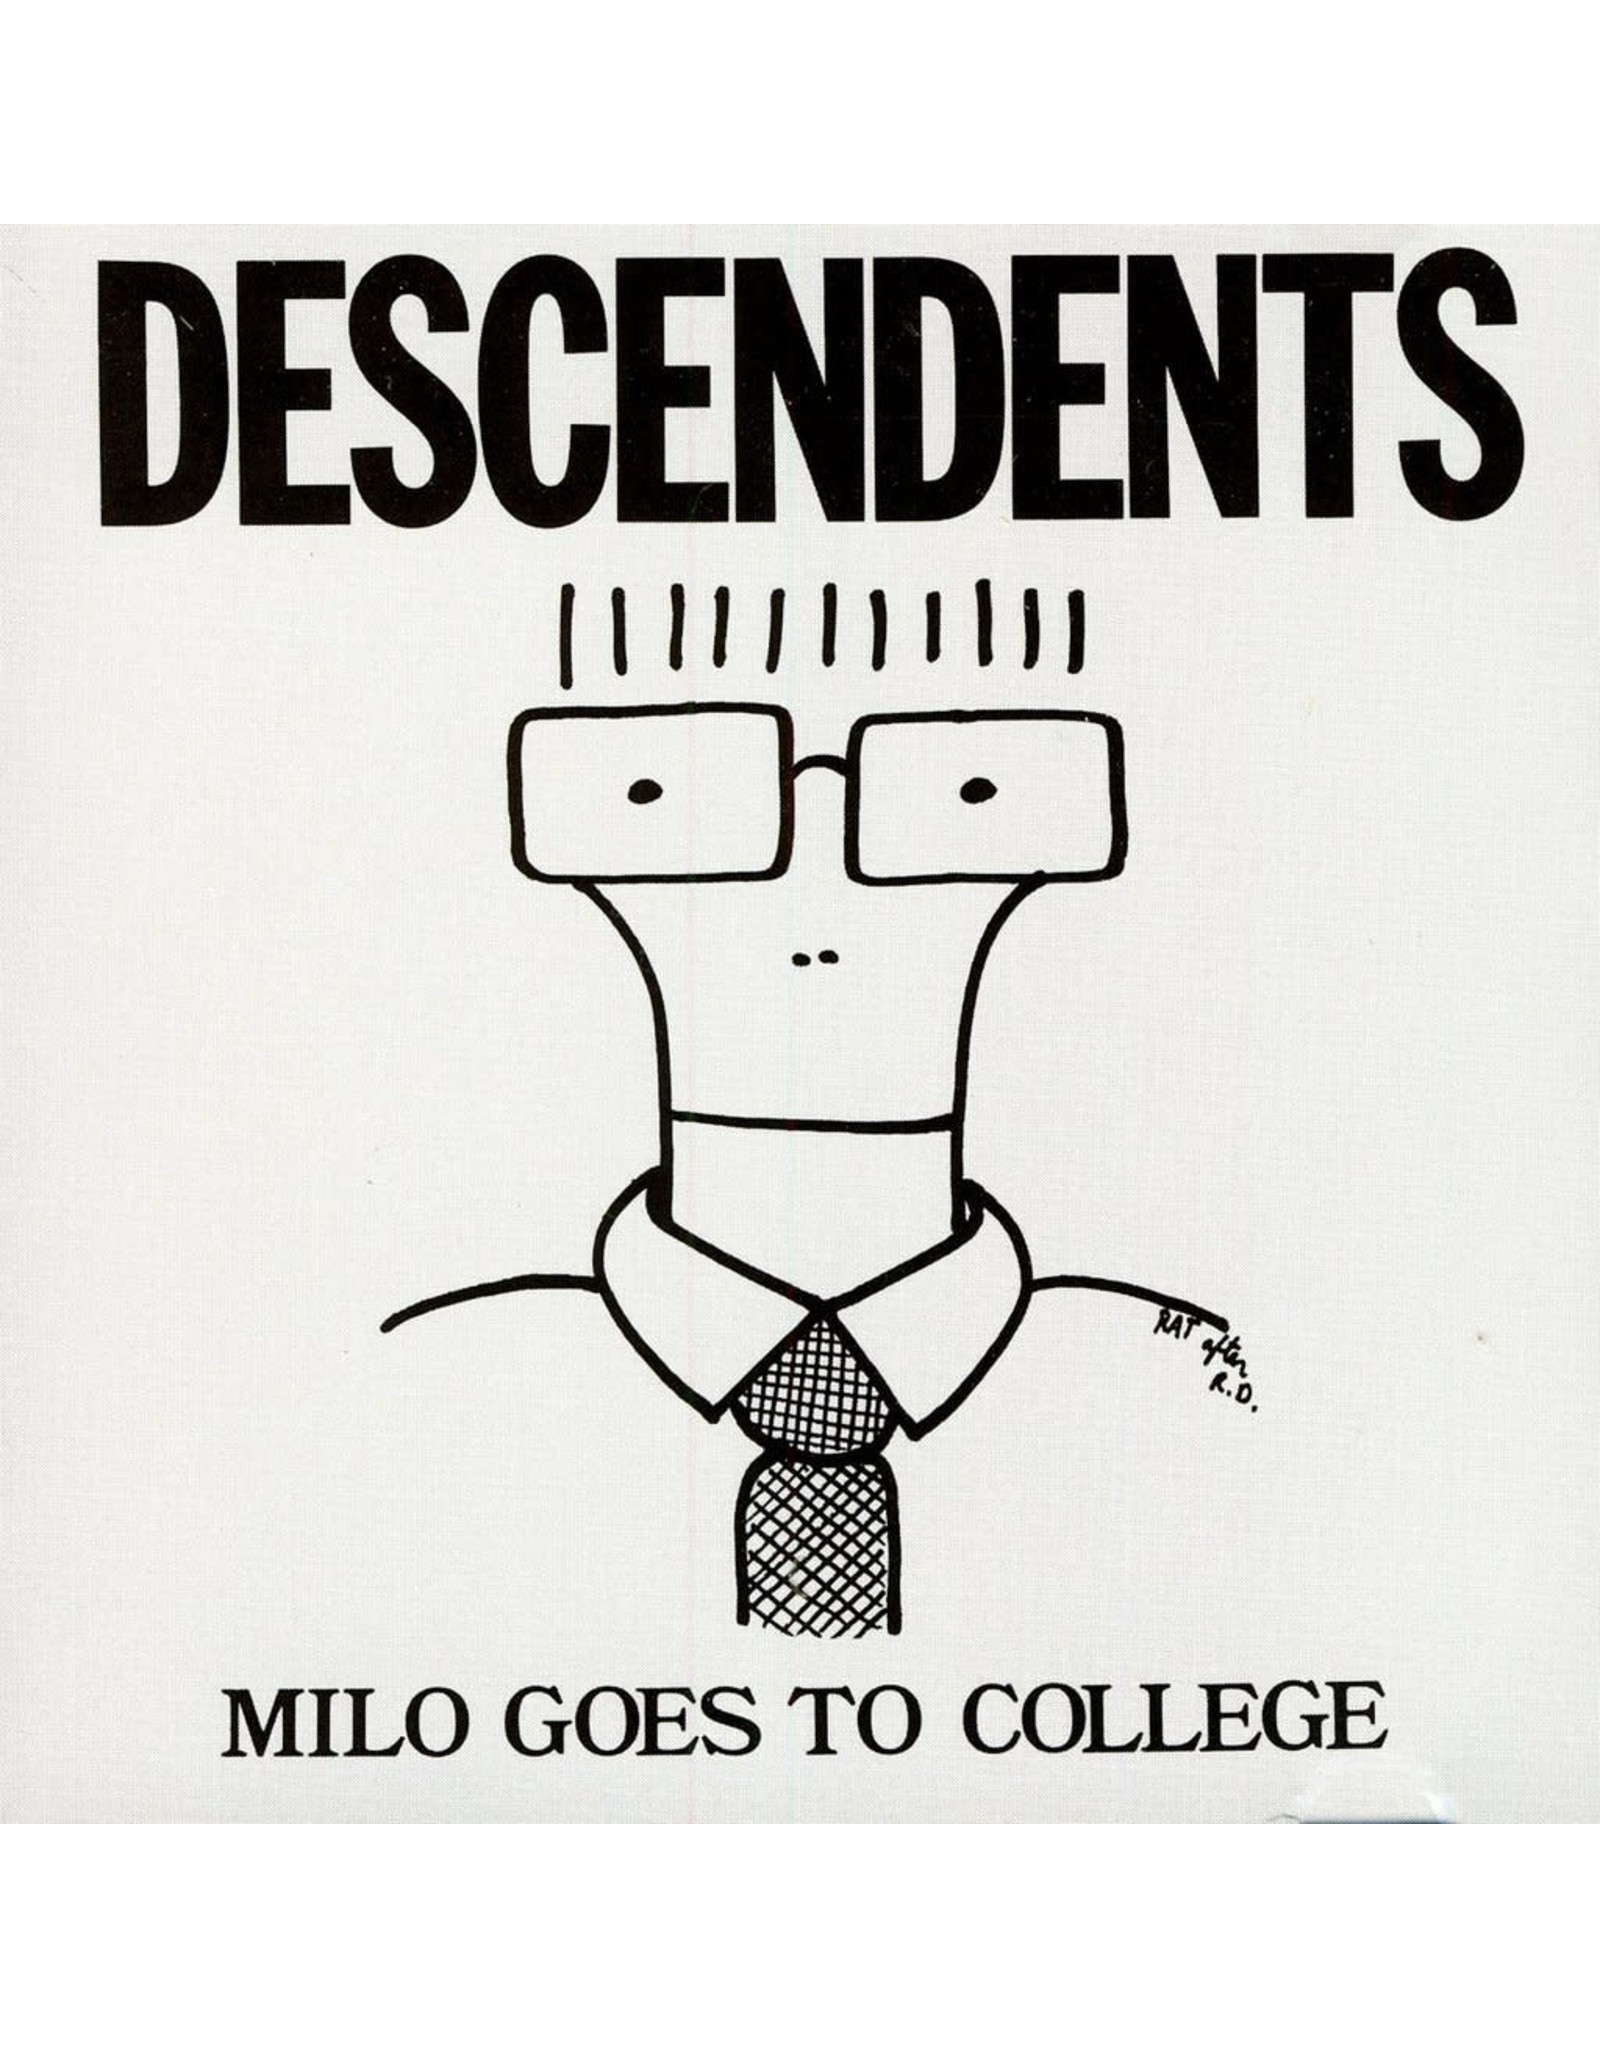 Descendents - Milo Goes to College